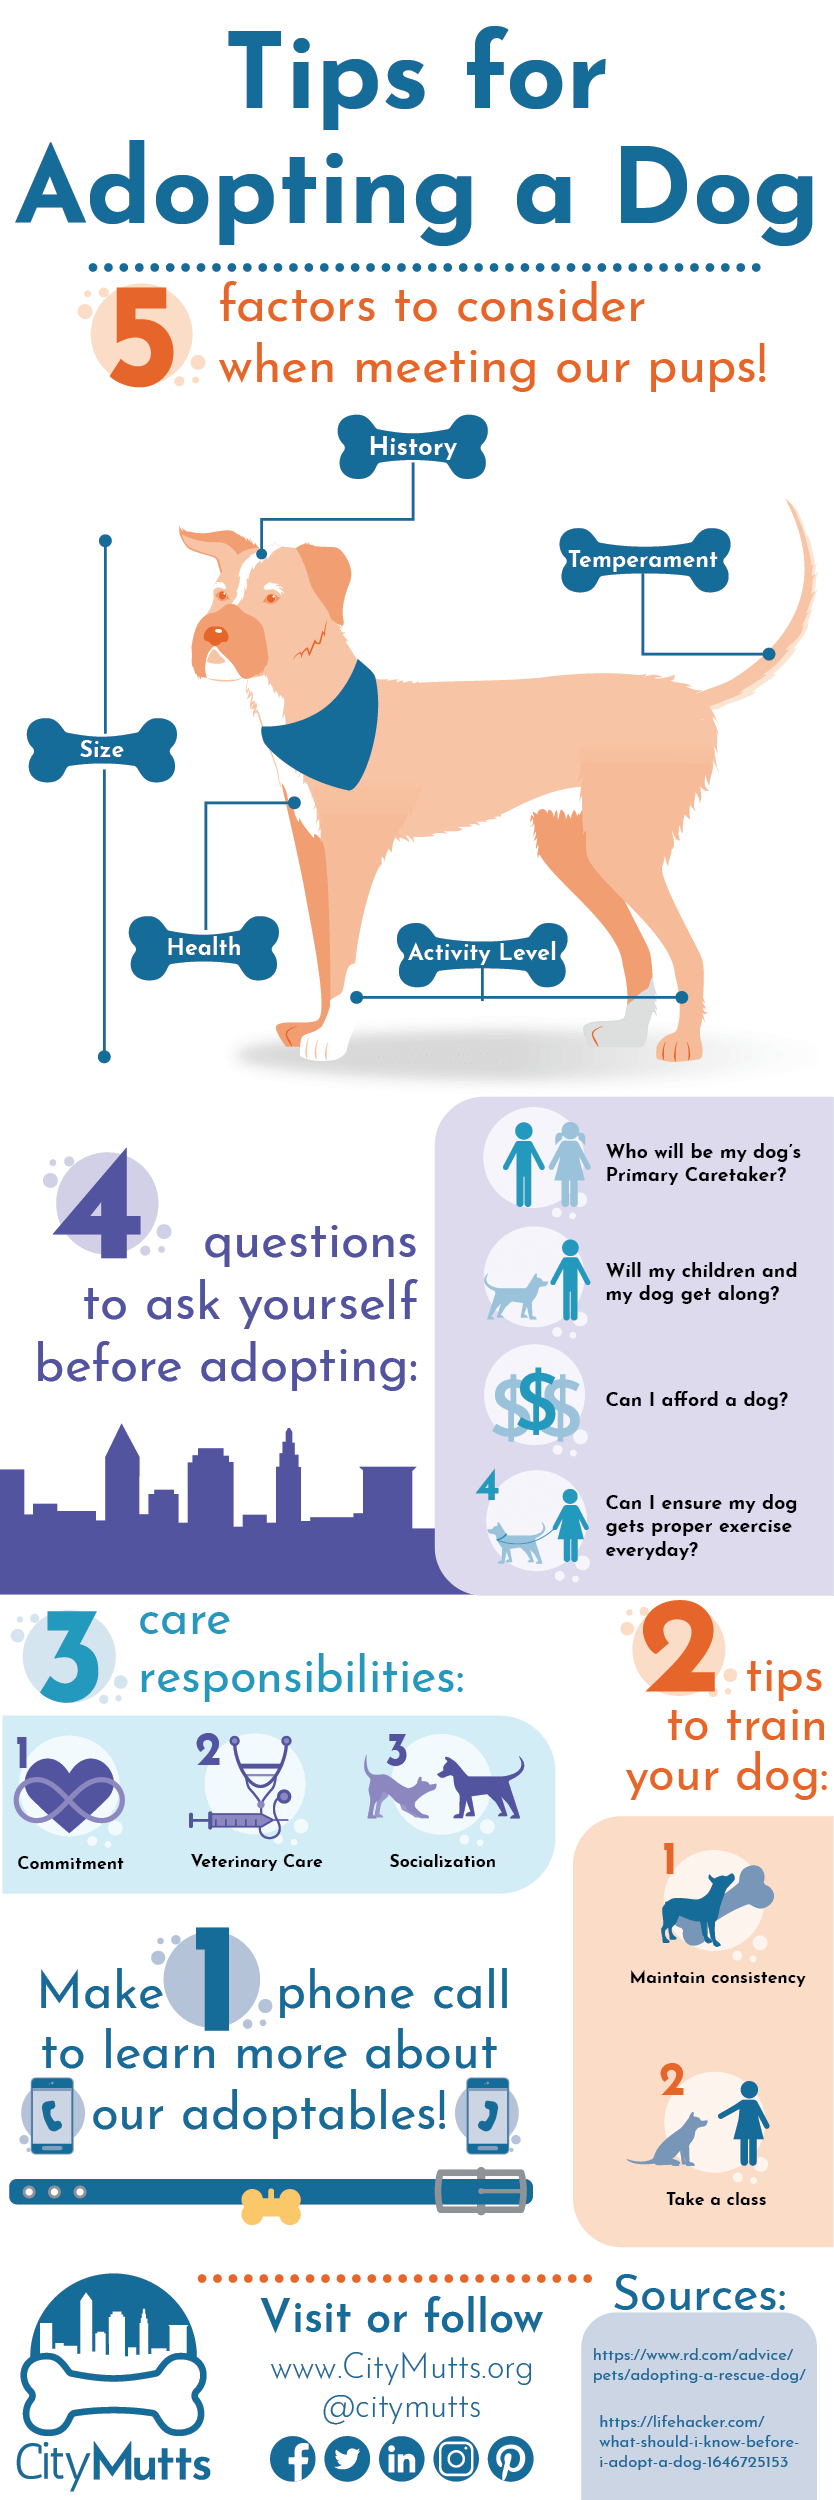 Tips for Dog Adoption Sample Infographic